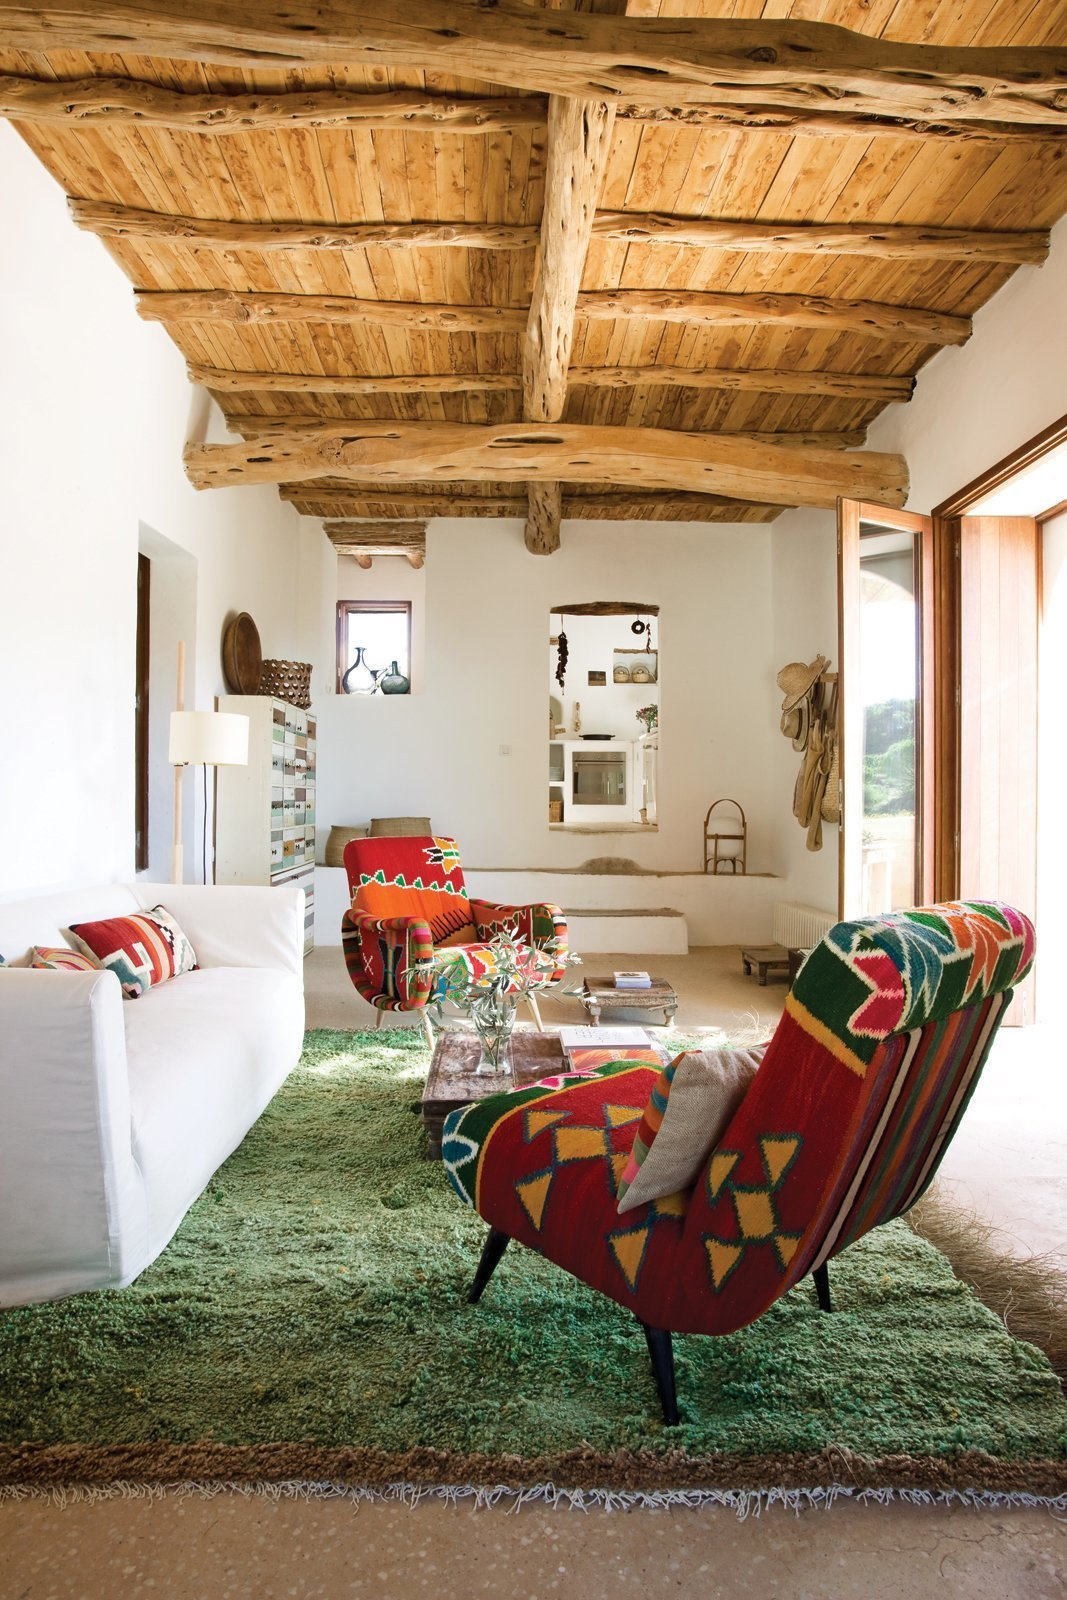 Living Room, Rug Floor, Chair, Sofa, Coffee Tables, Floor Lighting, Lamps, and Storage Rug designer Nani Marquina and photographer Albert Font created their home in a peaceful corner of the Spanish island of Ibiza. In their living room is a pair of kilim-covered chairs by Philippe Xerri, a chest of drawers by Piet Hein Eek, and a handmade Tunisian rug that provides bursts of color amidst the overall color scheme of white, ecru, and cream.  Photo 11 of 13 in 12 Mediterranean Homes That Are the Antidote to Mid-Winter Blues